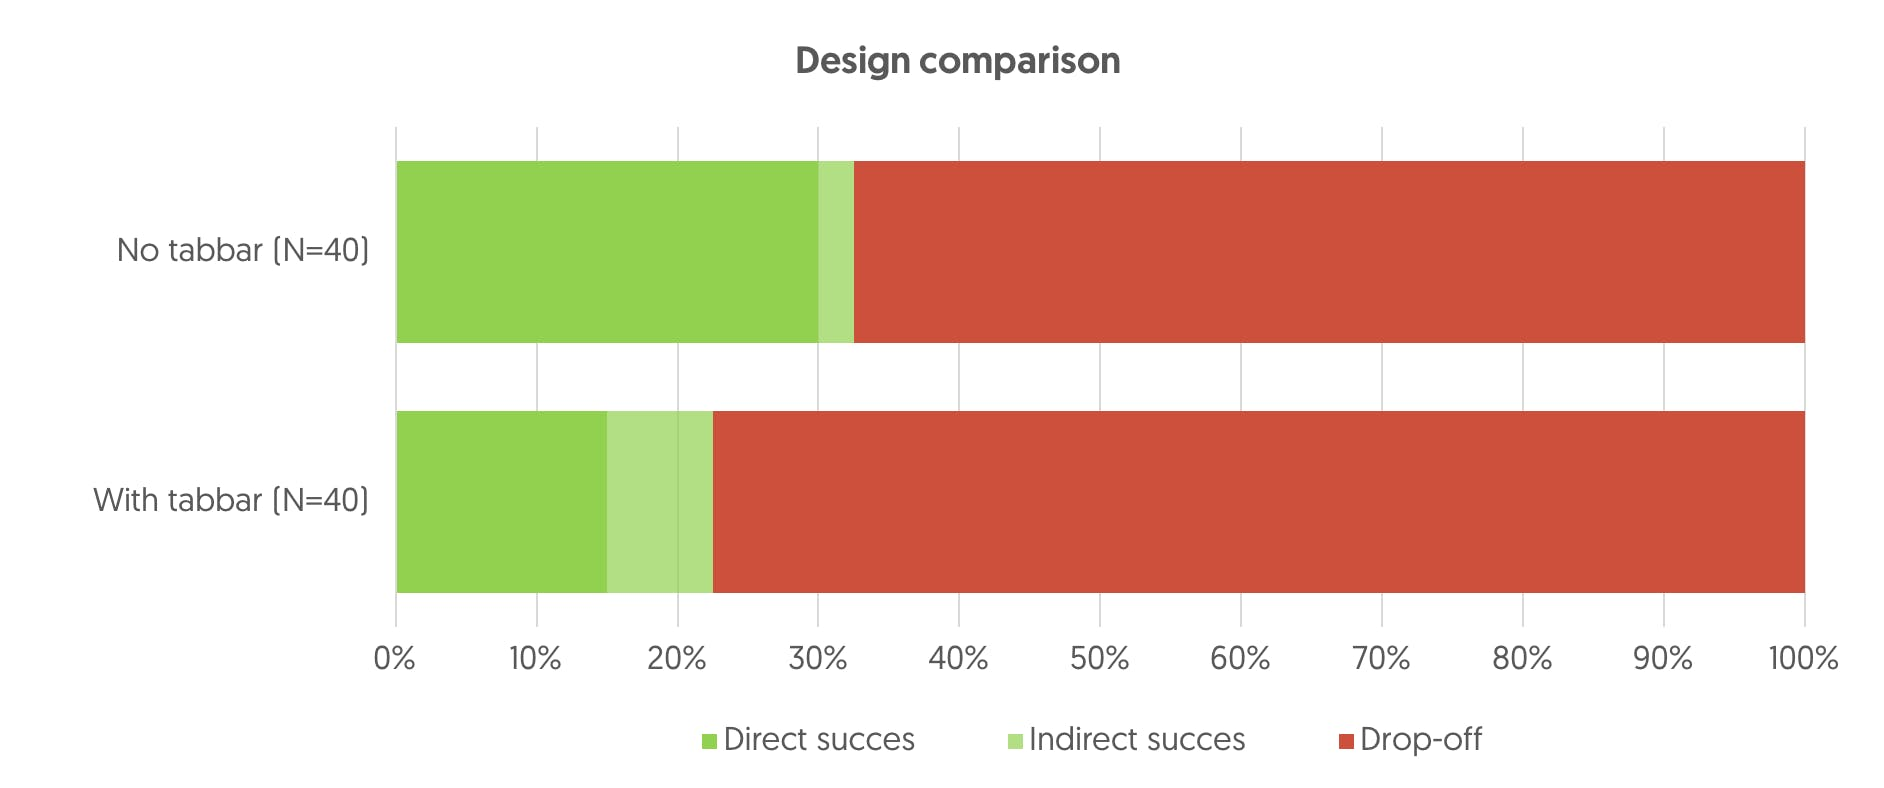 Design comparison results